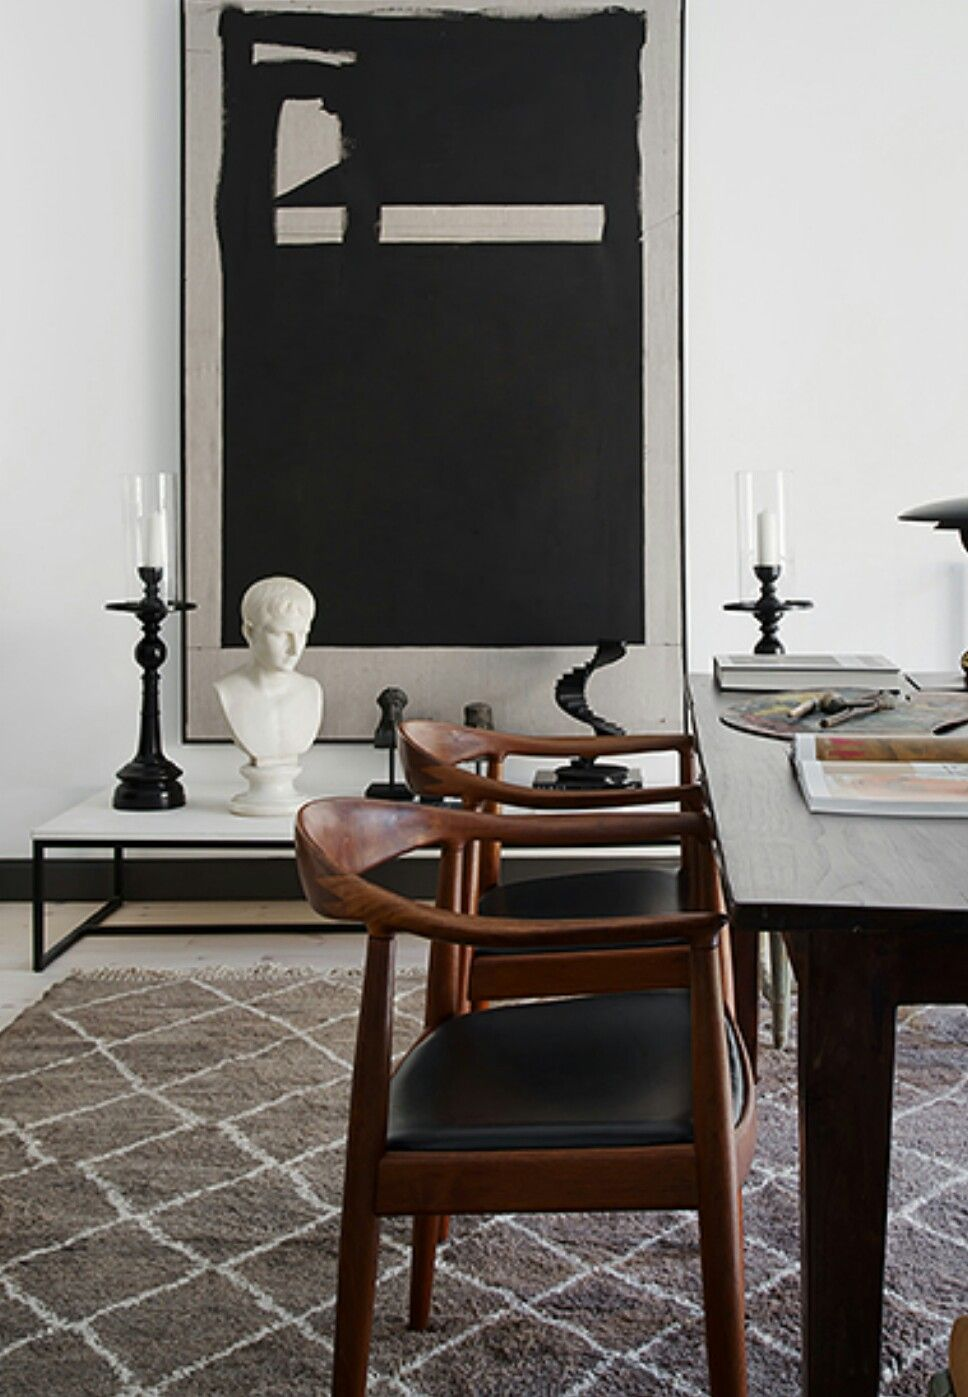 The chairs!!! Love this modern eclectic dining room